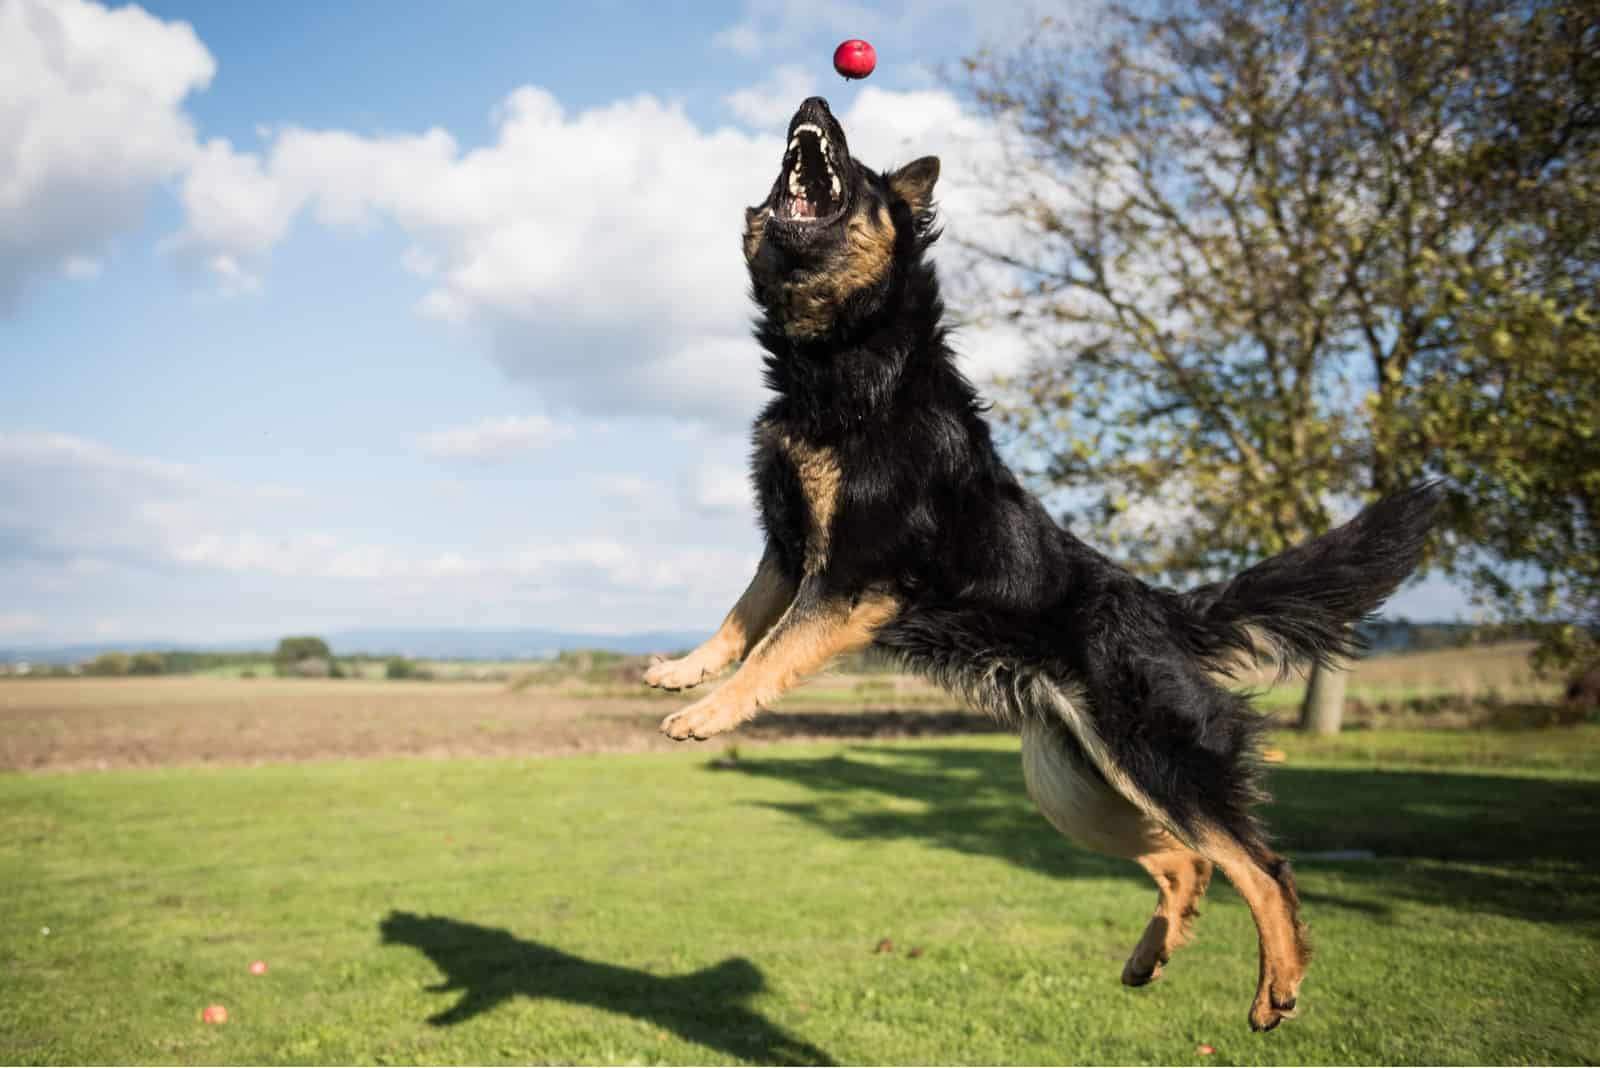 Bohemian Shepherd jumps and catches apples in a garden